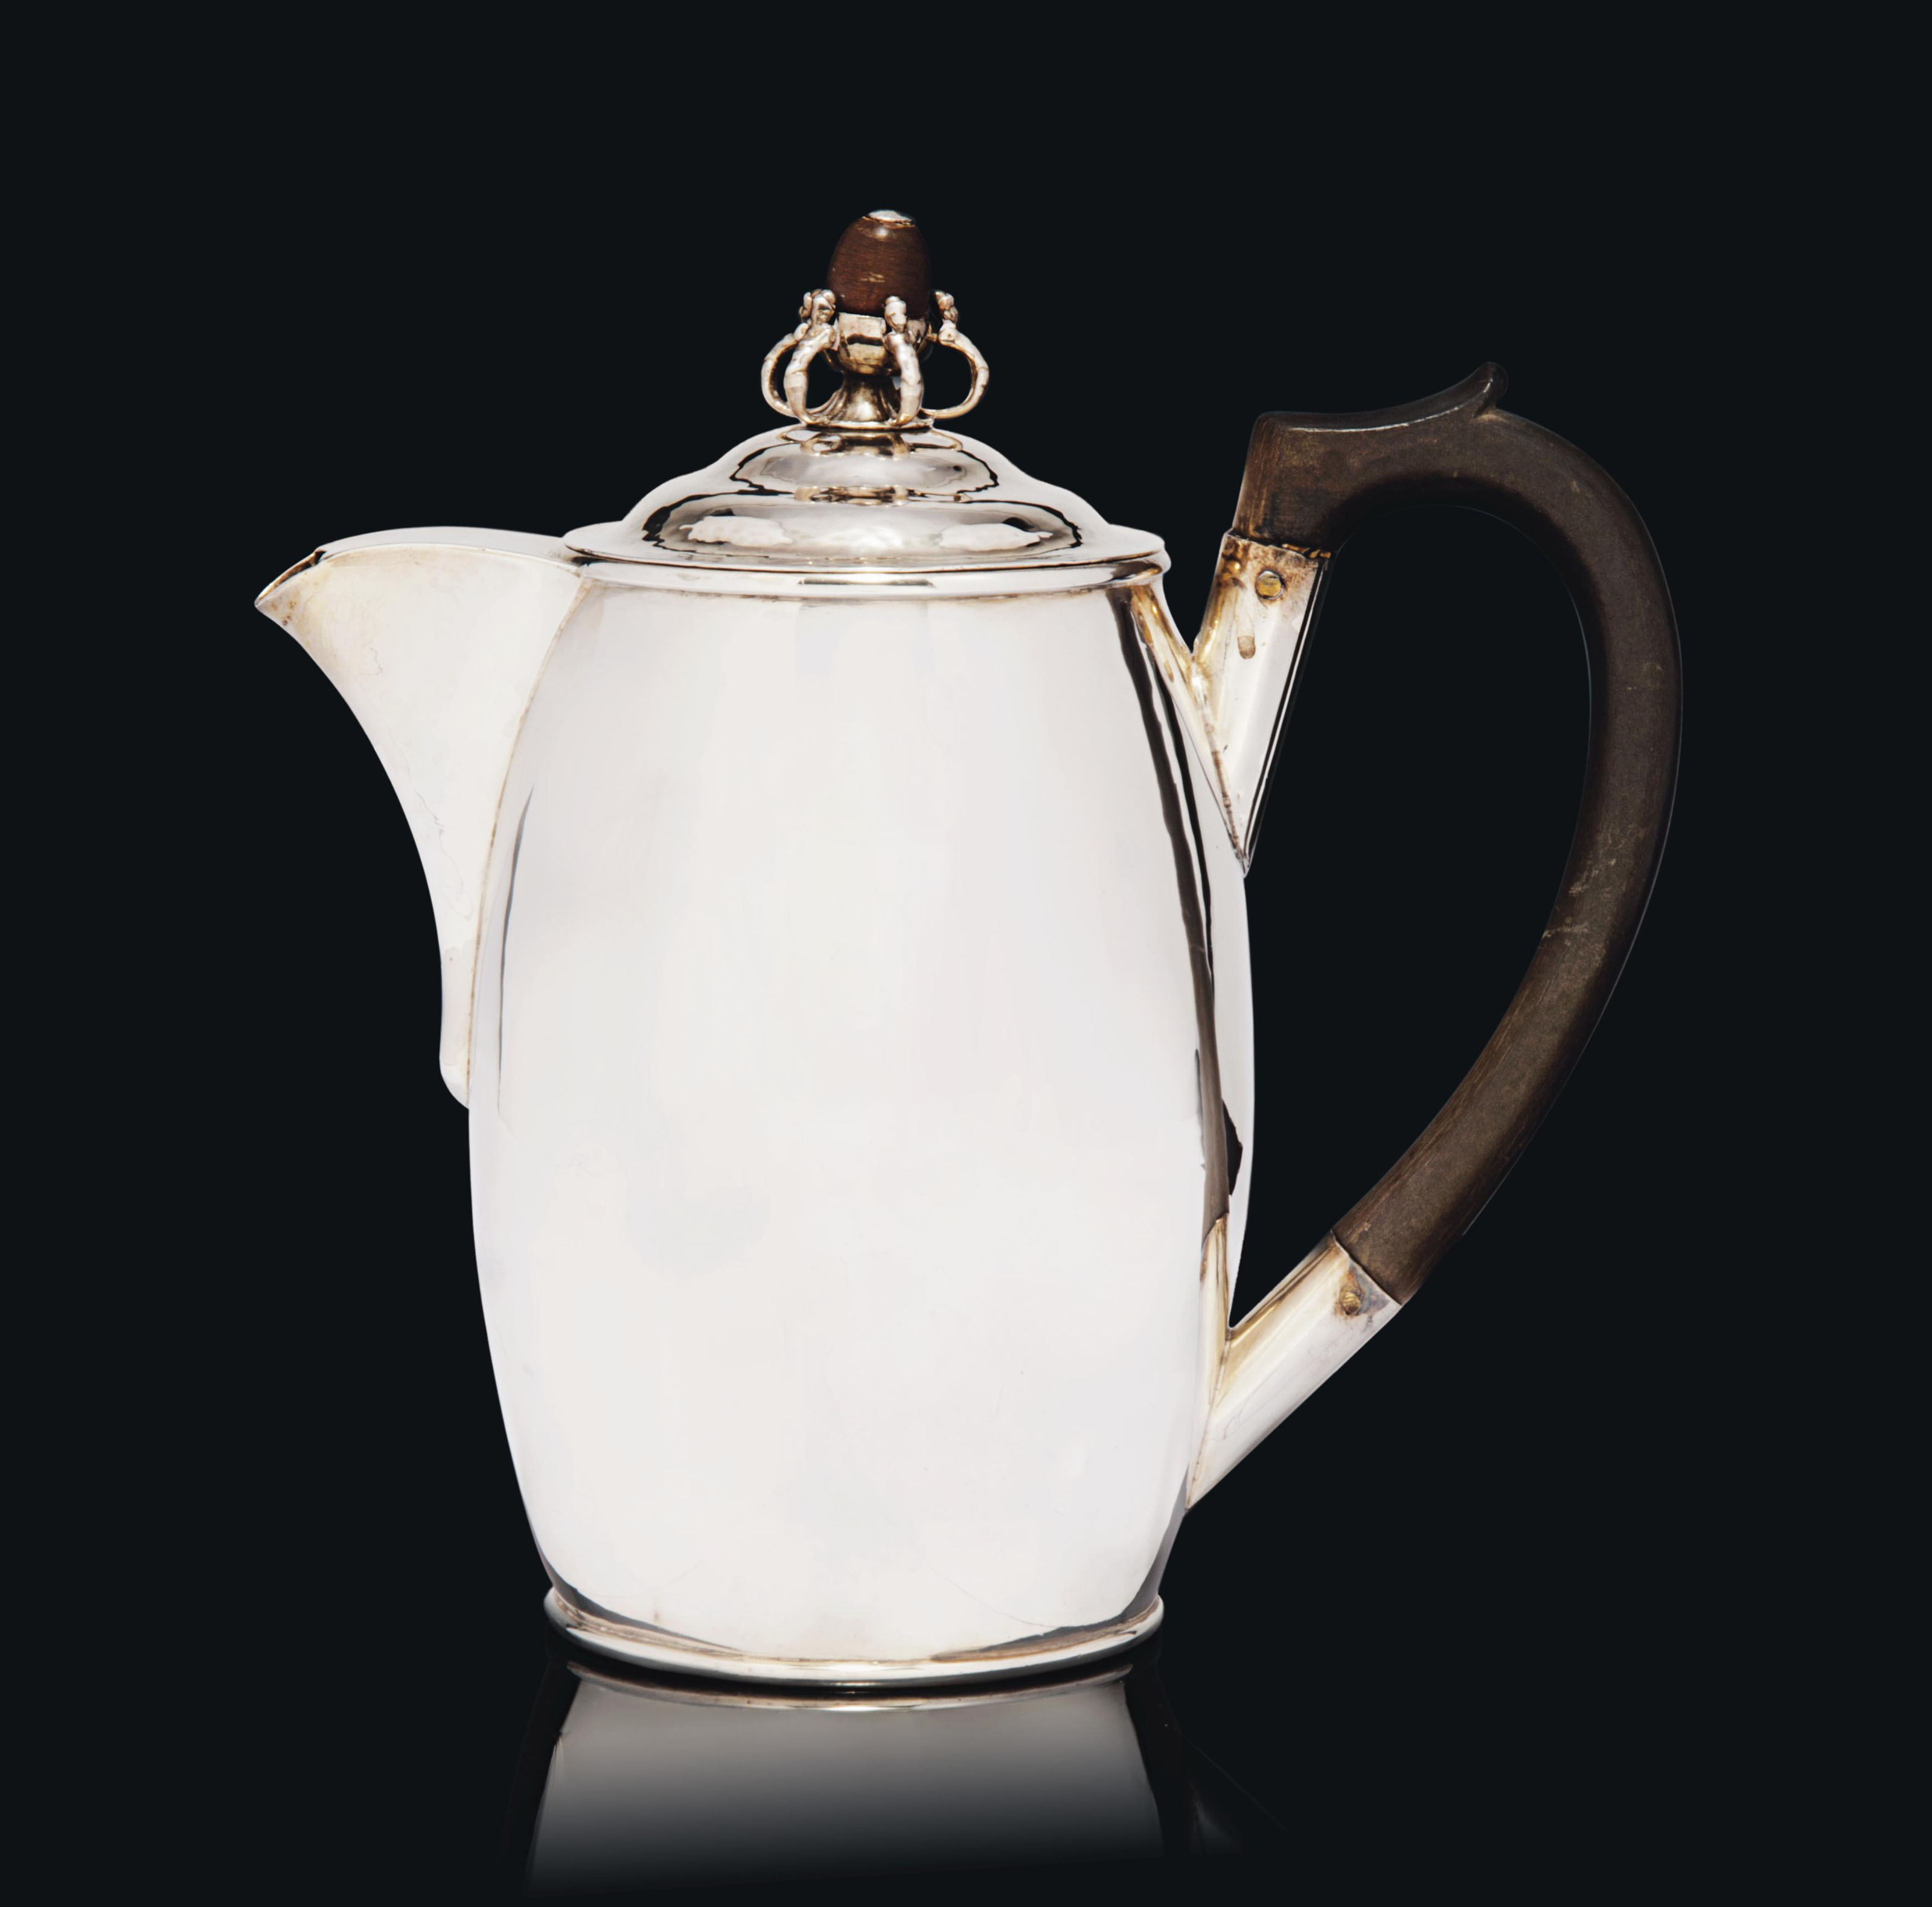 AN ARTS & CRAFTS GUILD OF HANDICRAFT LTD SILVER COFFEE POT, THE DESIGN ATTRIBUTED TO CHARLES ROBERT ASHBEE (1863-1942)